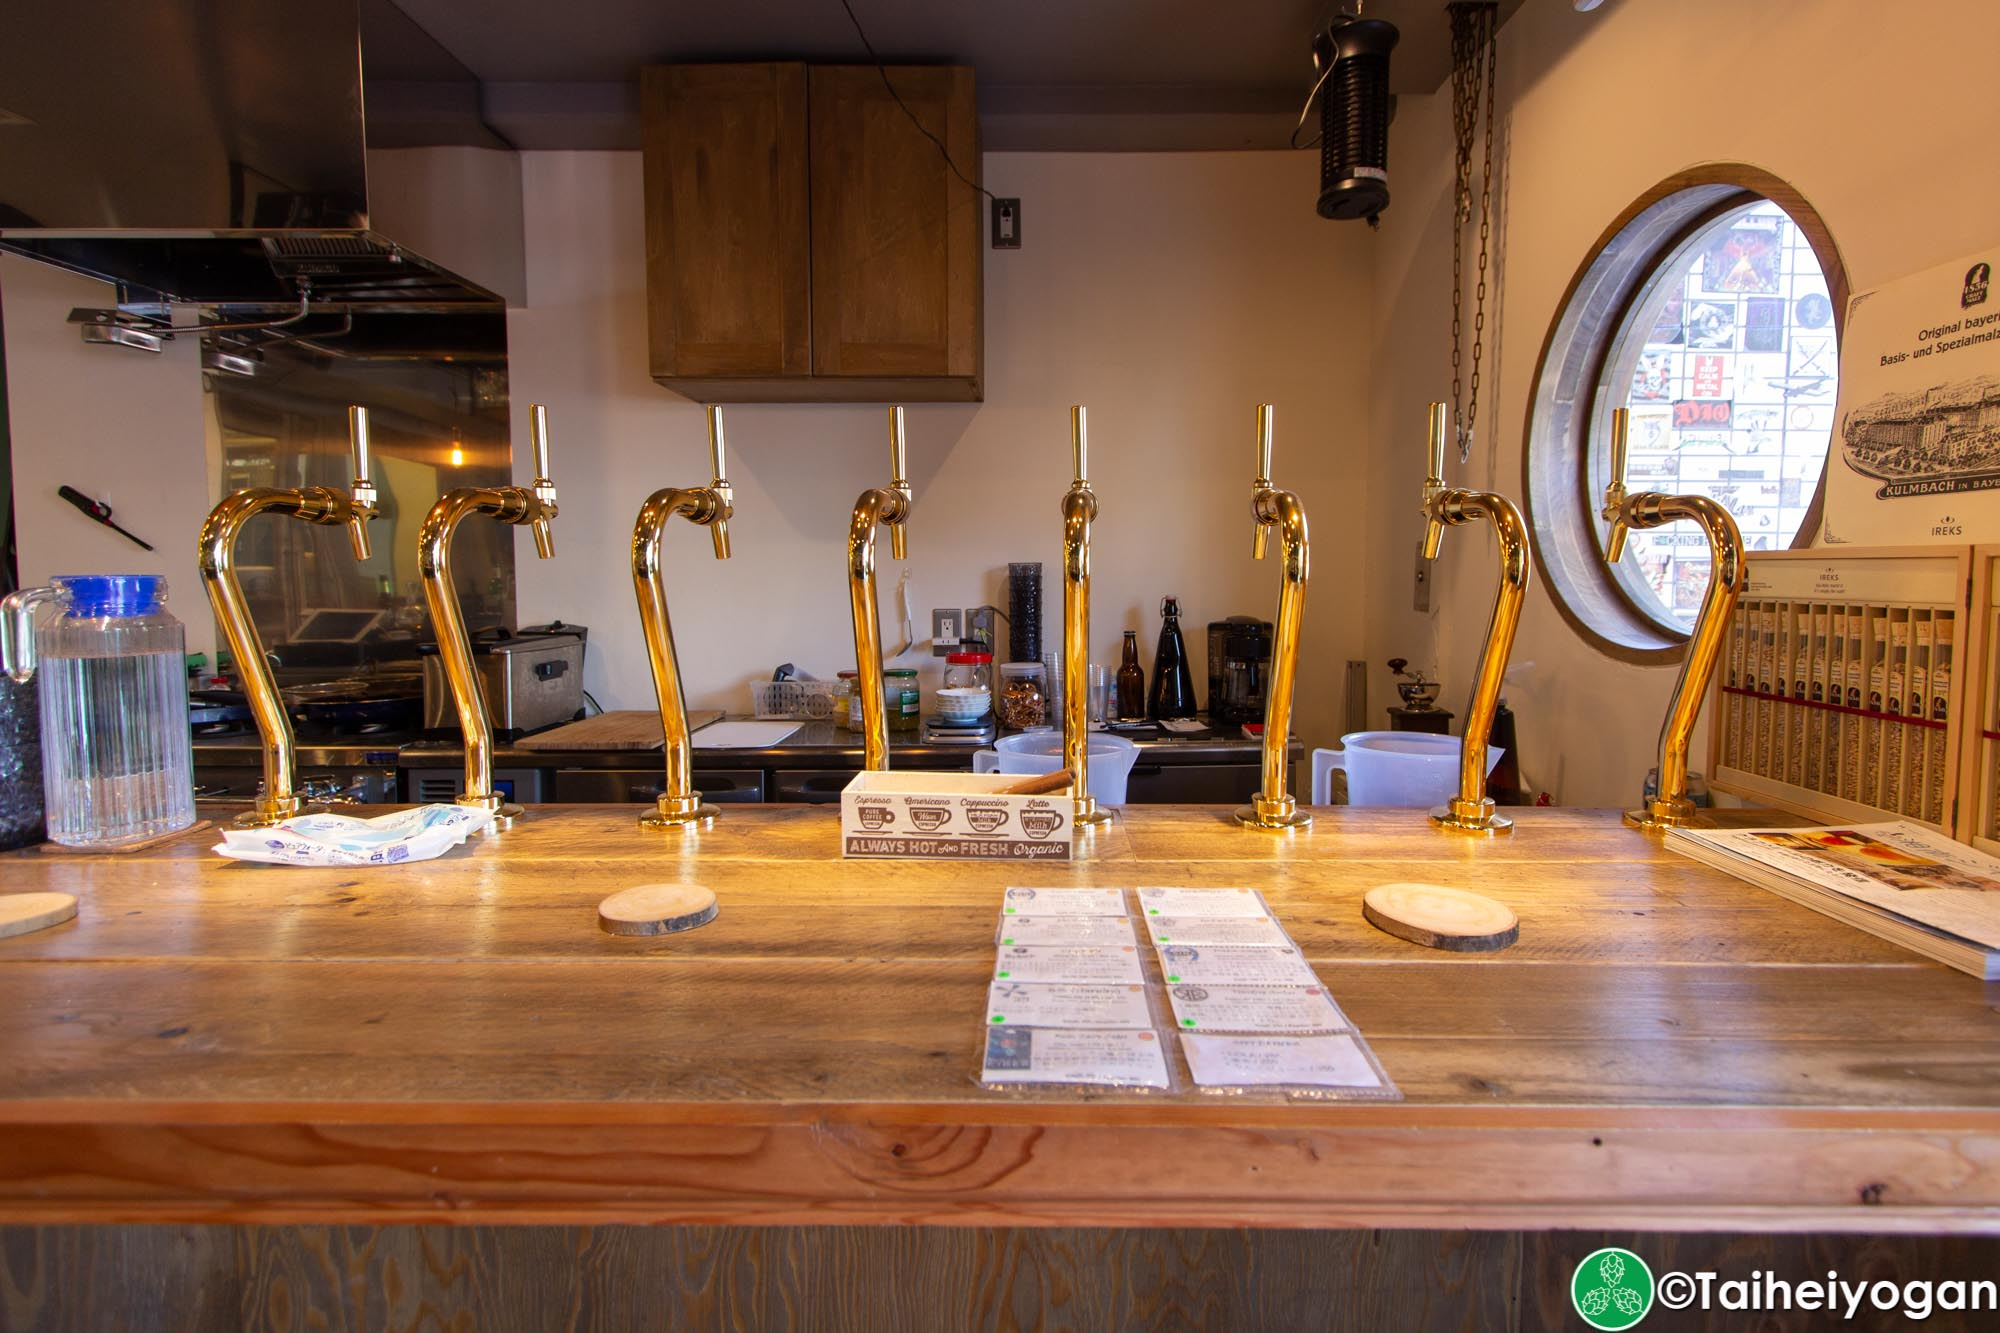 Yggdrasil Brewing - Interior - Beer Taps